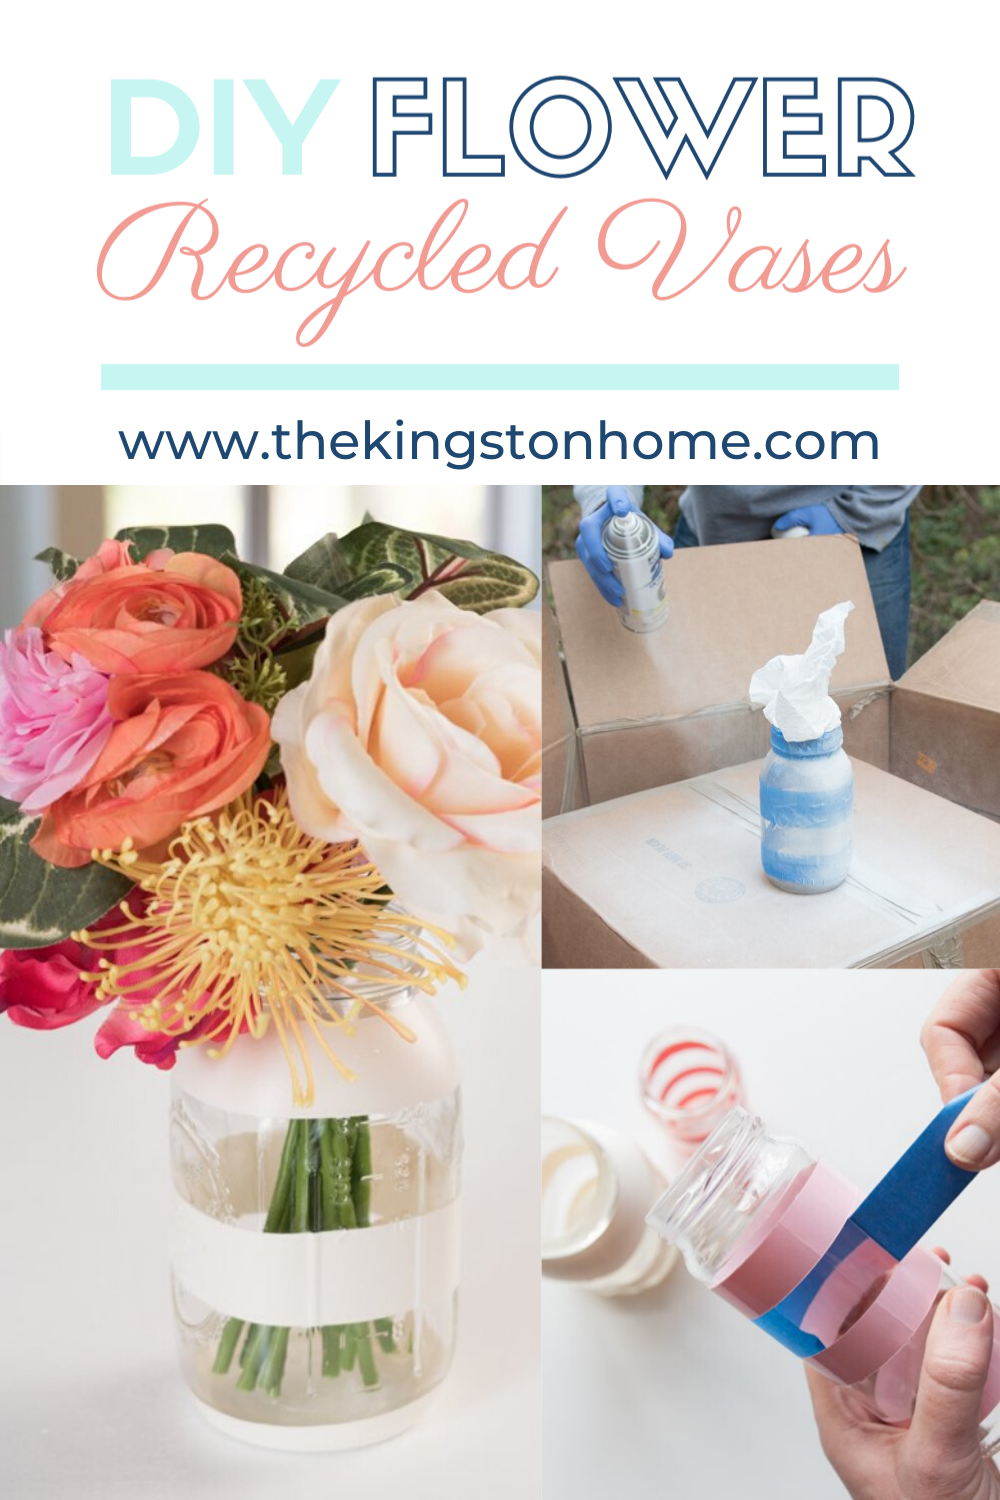 Glass Bottle Upcycle DIY Bud Vases - The Kingston Home: Grab a few old jars from the recycling bin and some Rust-oleum spray paint and get crafty! Make an upcycled DIY flower vase for fresh spring blooms! via @craftykingstons